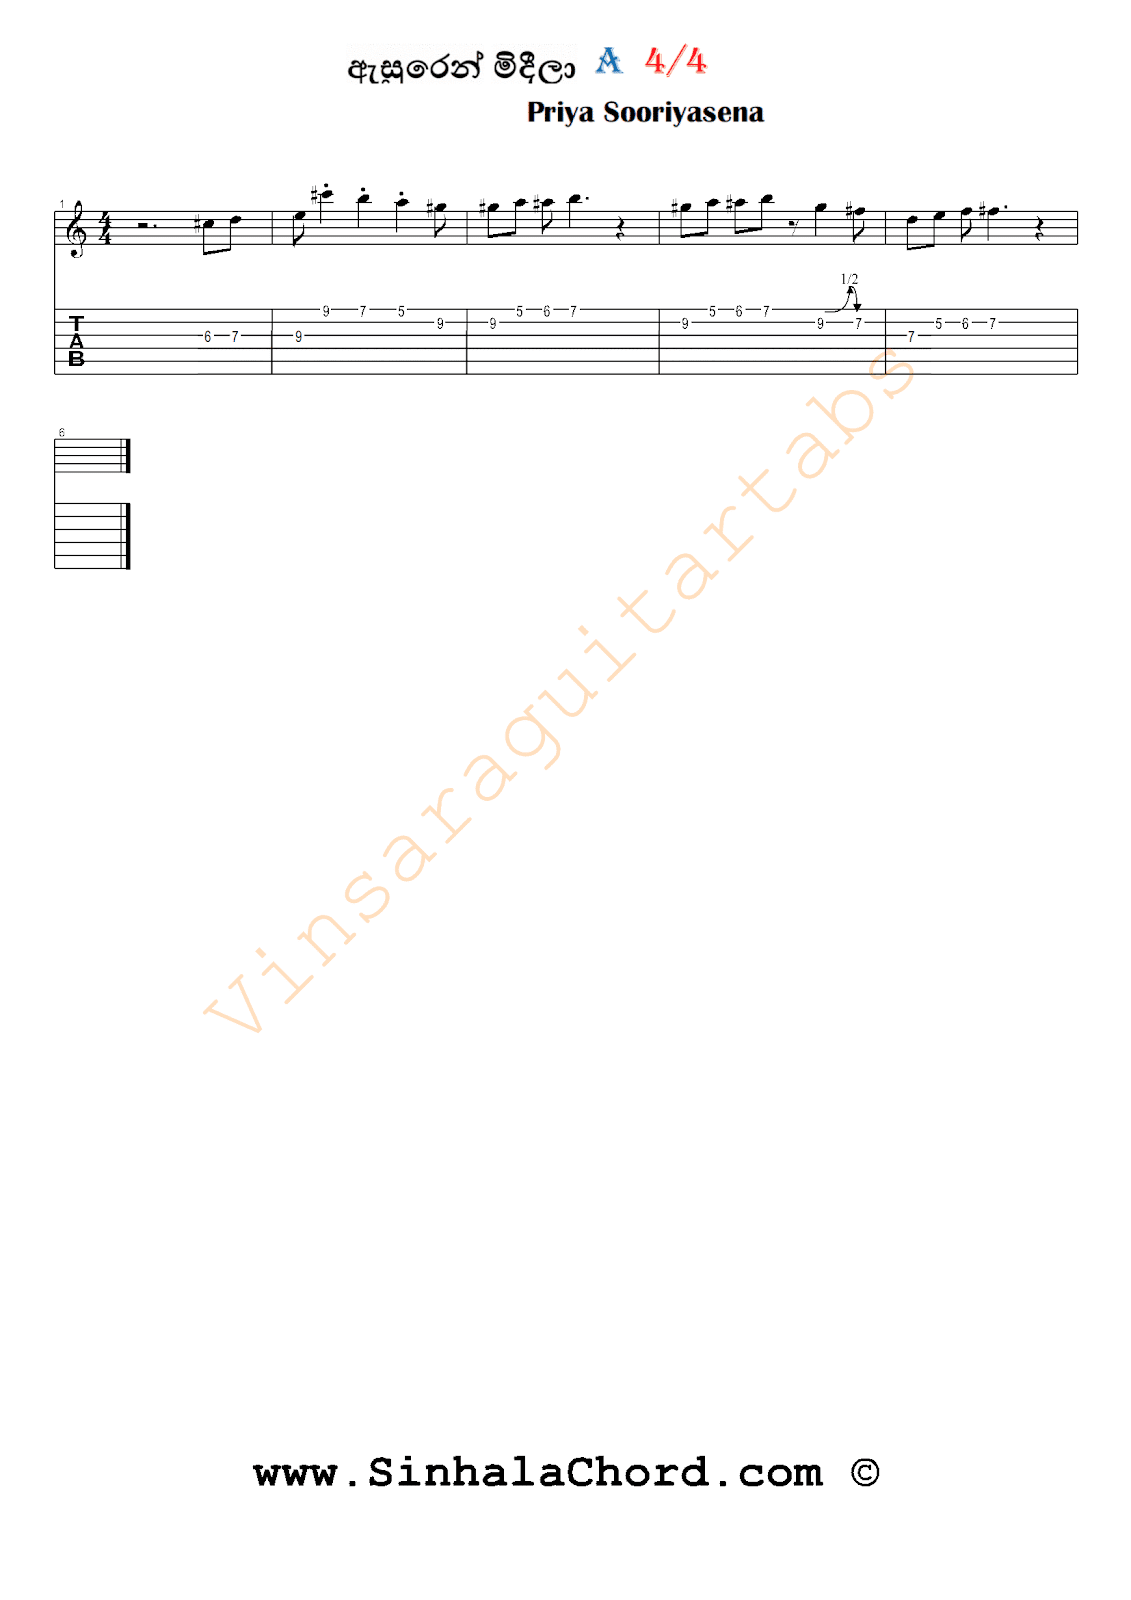 Asurin mideela guitar tab sinhala guitar chordssinhala songs this song has a simple yet beautiful chord progression also contains a diminished chord go to asurin mideela guitar chords hexwebz Gallery